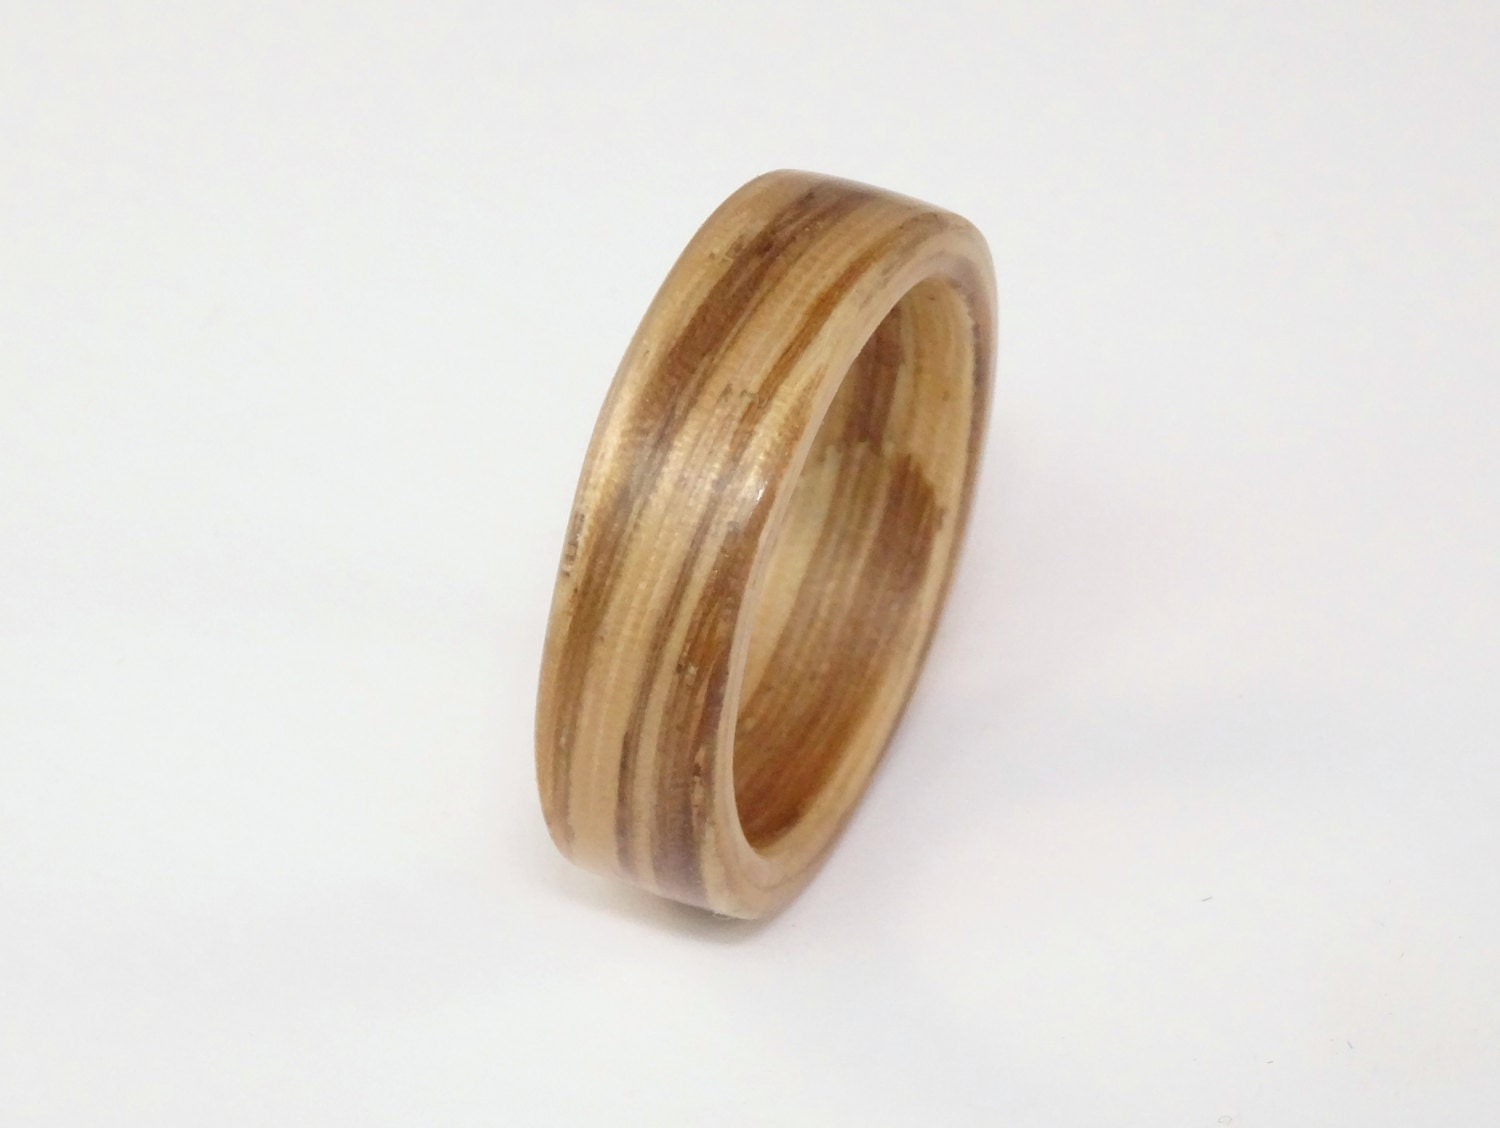 Zebrano Bent Wood Ring Hand Made Rings In Any by ZebranoWoodCraft